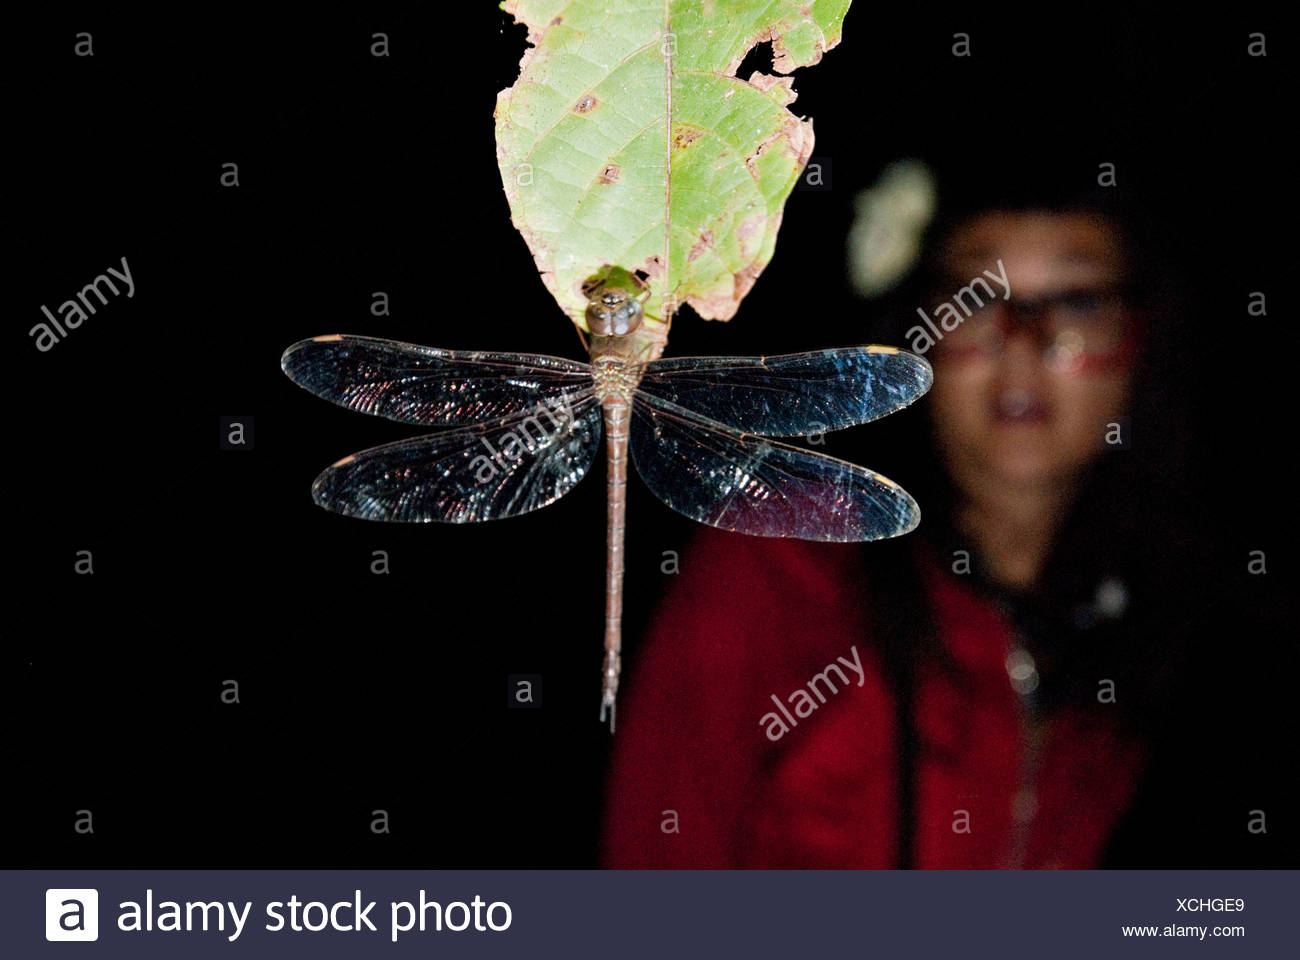 A dragonfly sleeps during the night clinging to a leaf; while a young woman looks in amazement at the insect in the background. - Stock Image